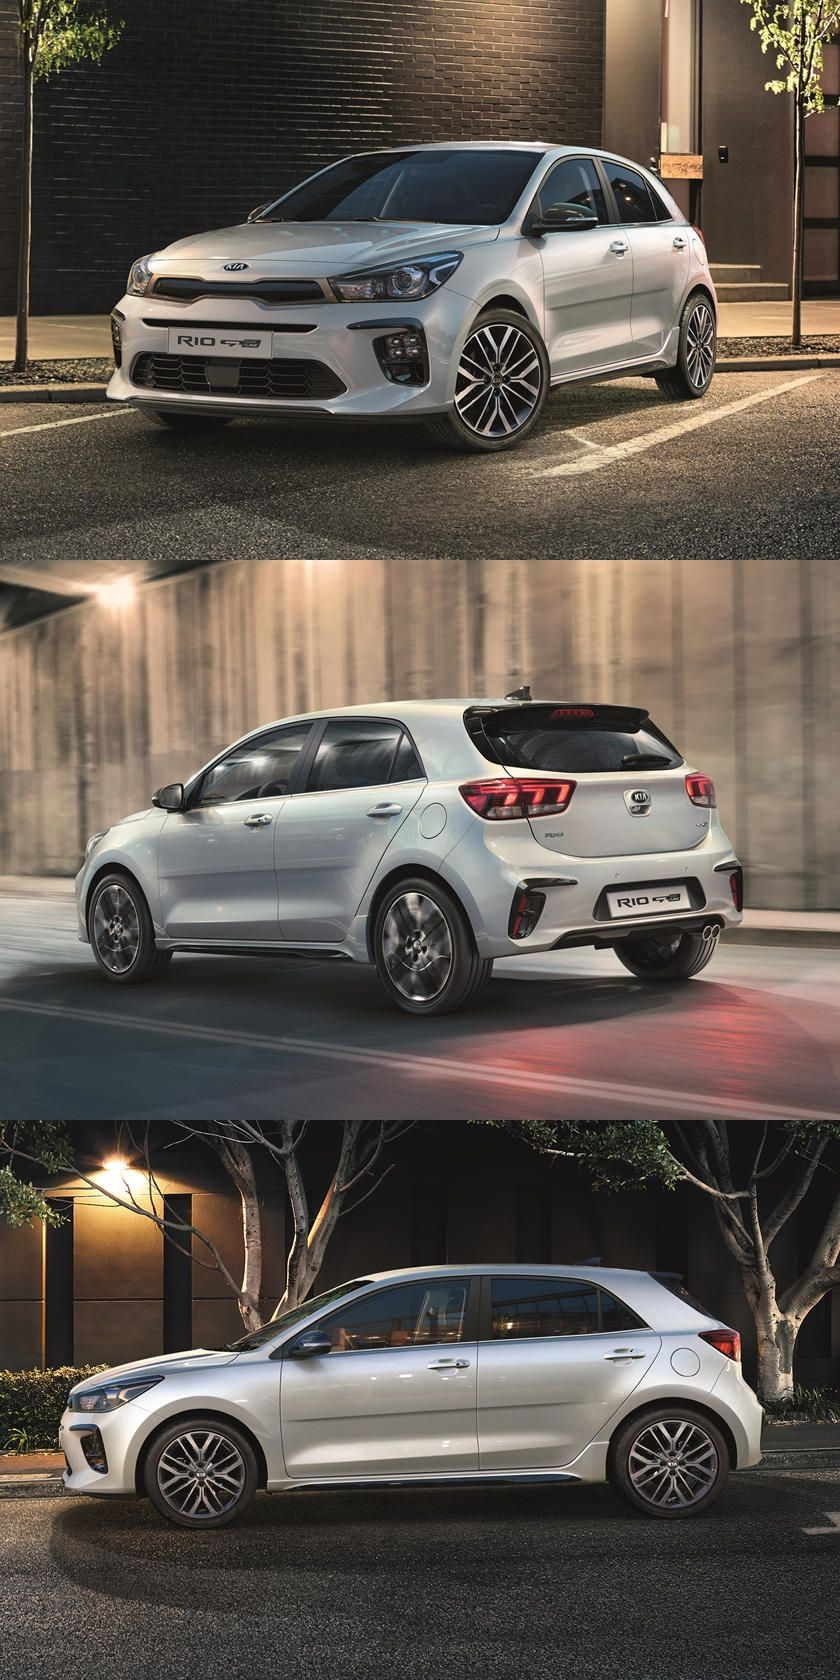 2021 Kia Rio Revealed With Fresh Styling And New Hybrid Tech New Rio Updated With Exterior And Interior Enhancements Along With A New In 2020 Kia Sorento Kia Rio Kia